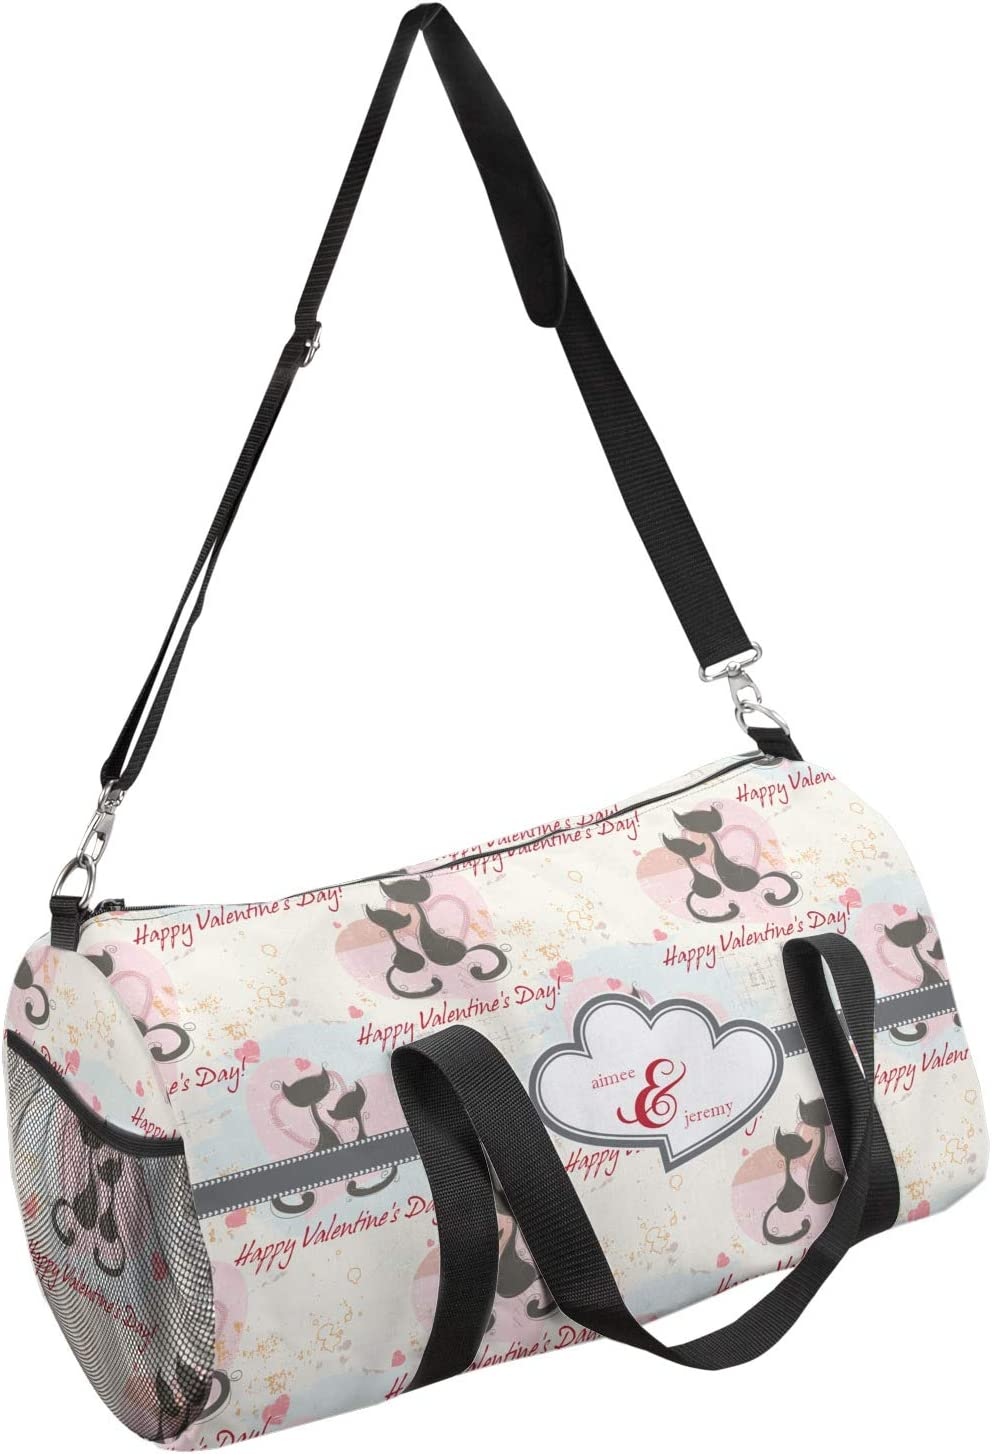 YouCustomizeIt Cats in Love Duffel Bag Personalized